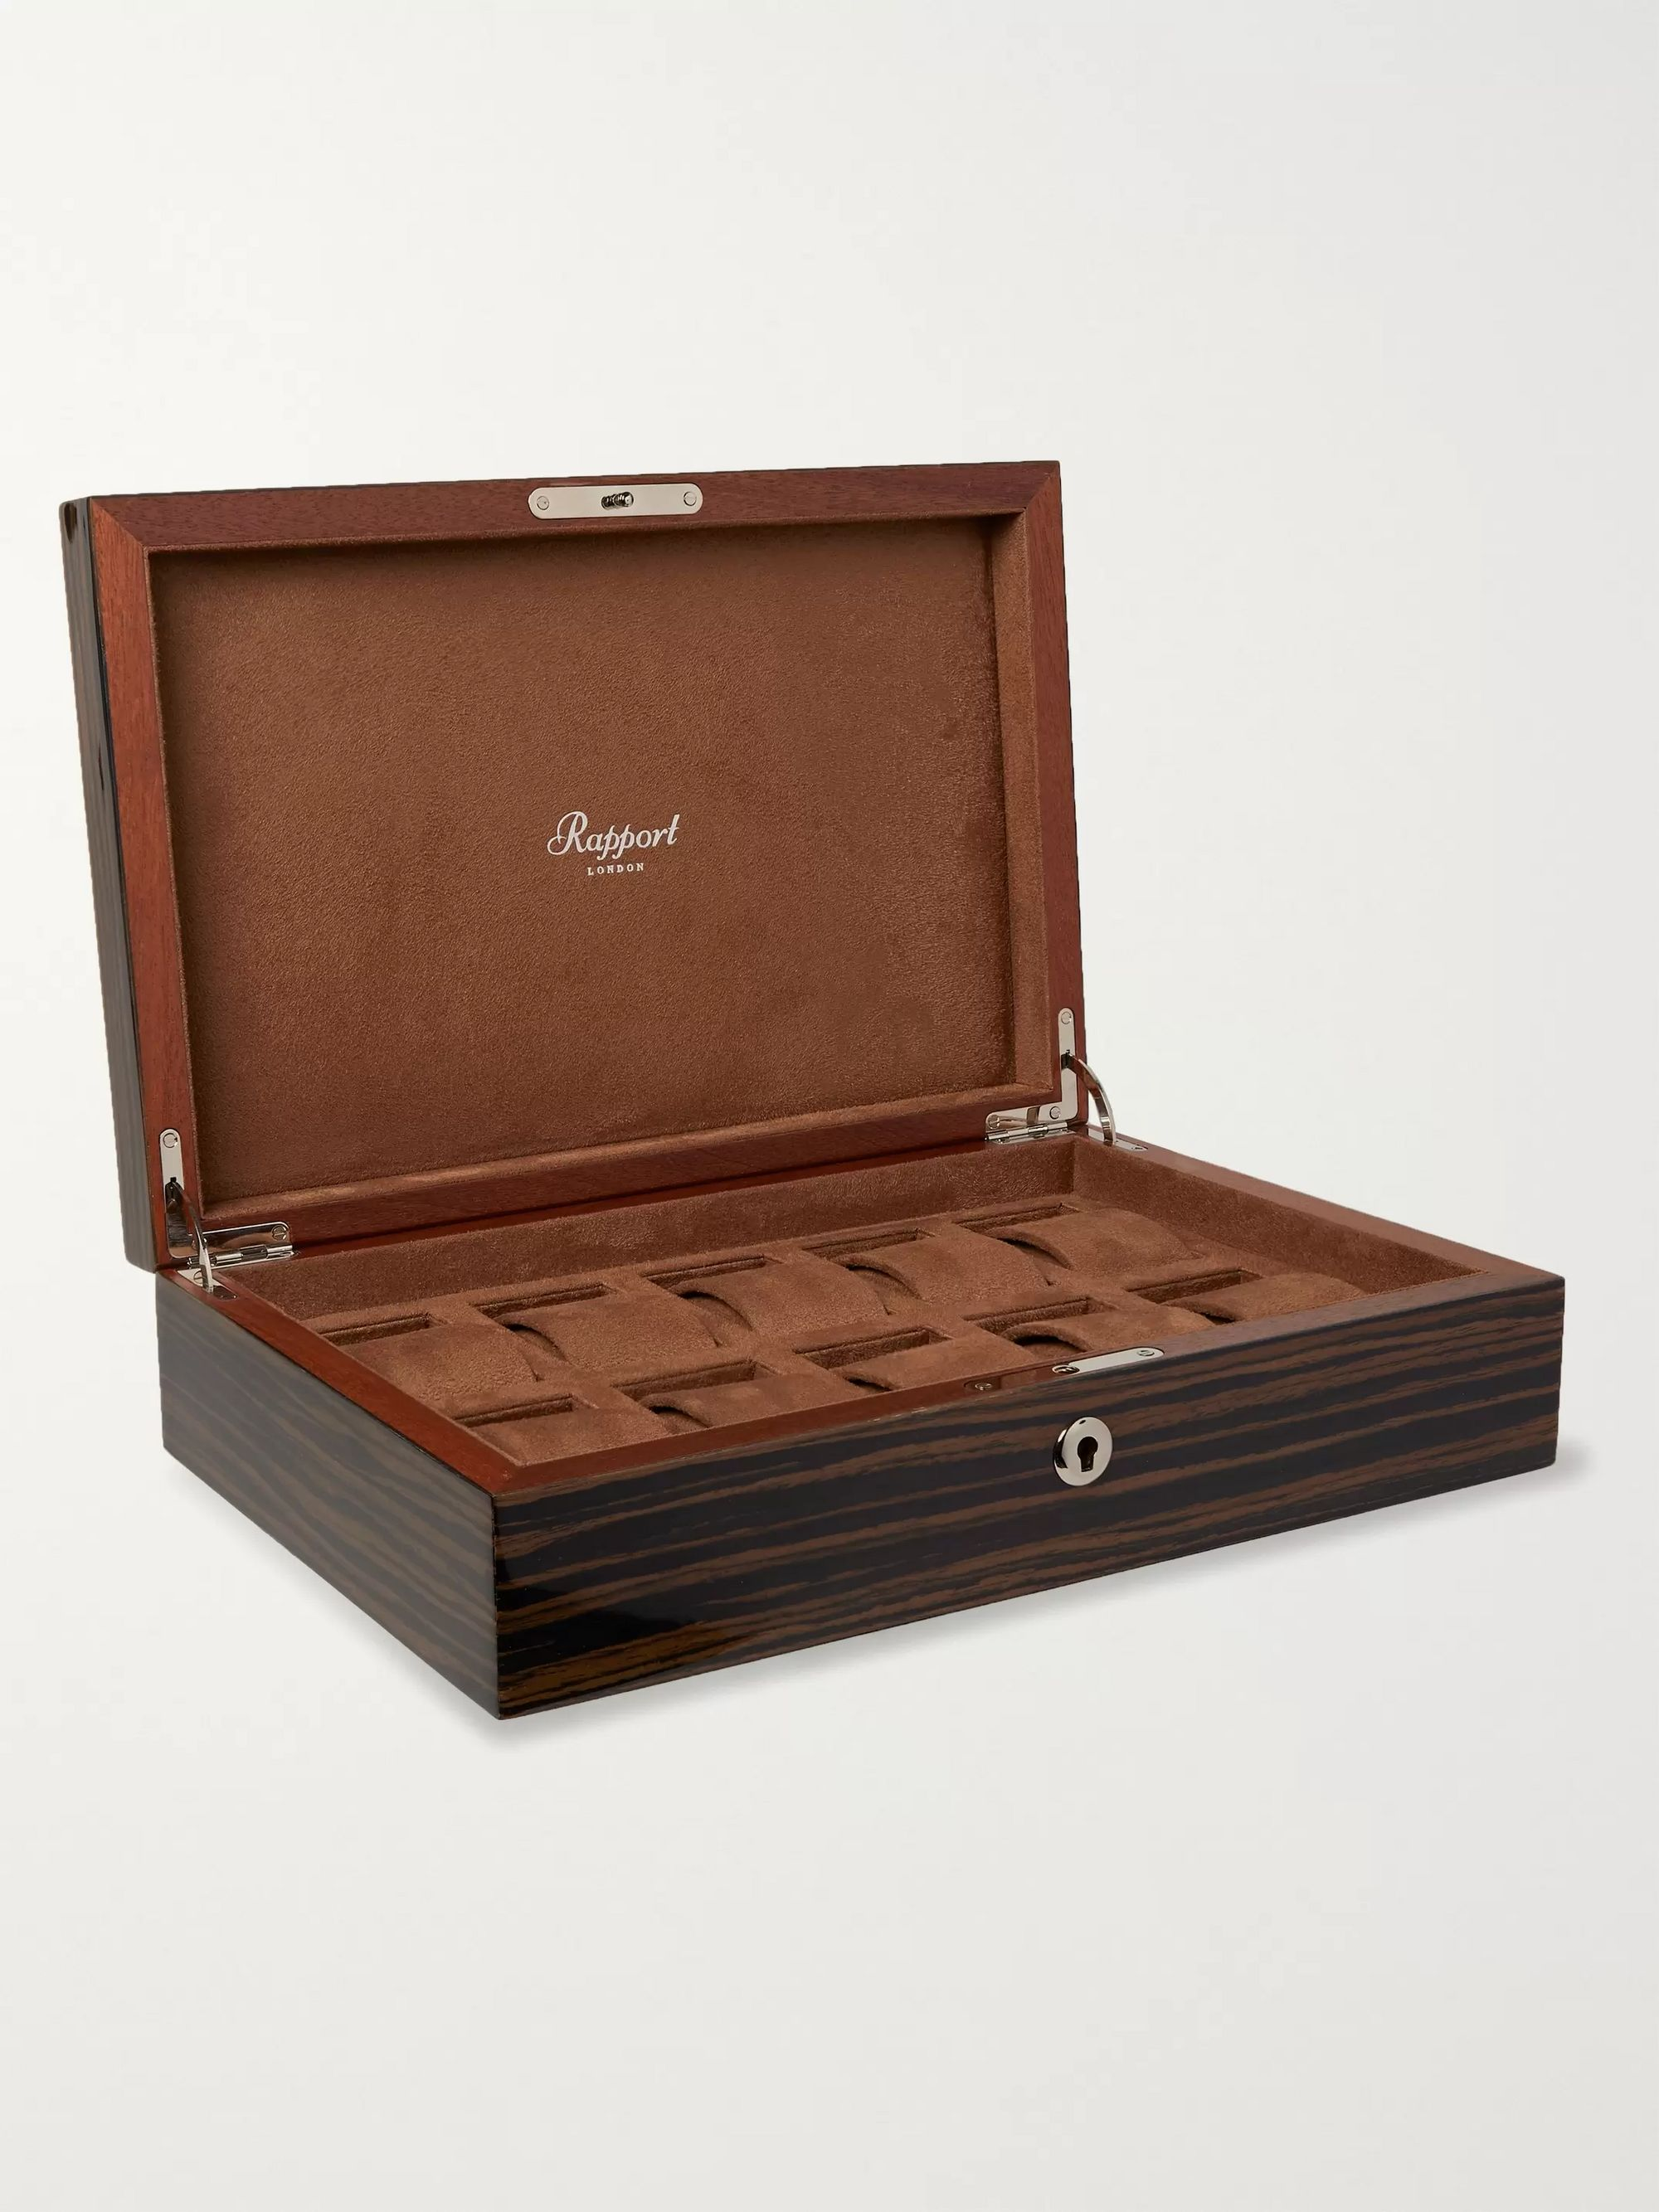 Rapport London Lacquered Cedar Watch Box